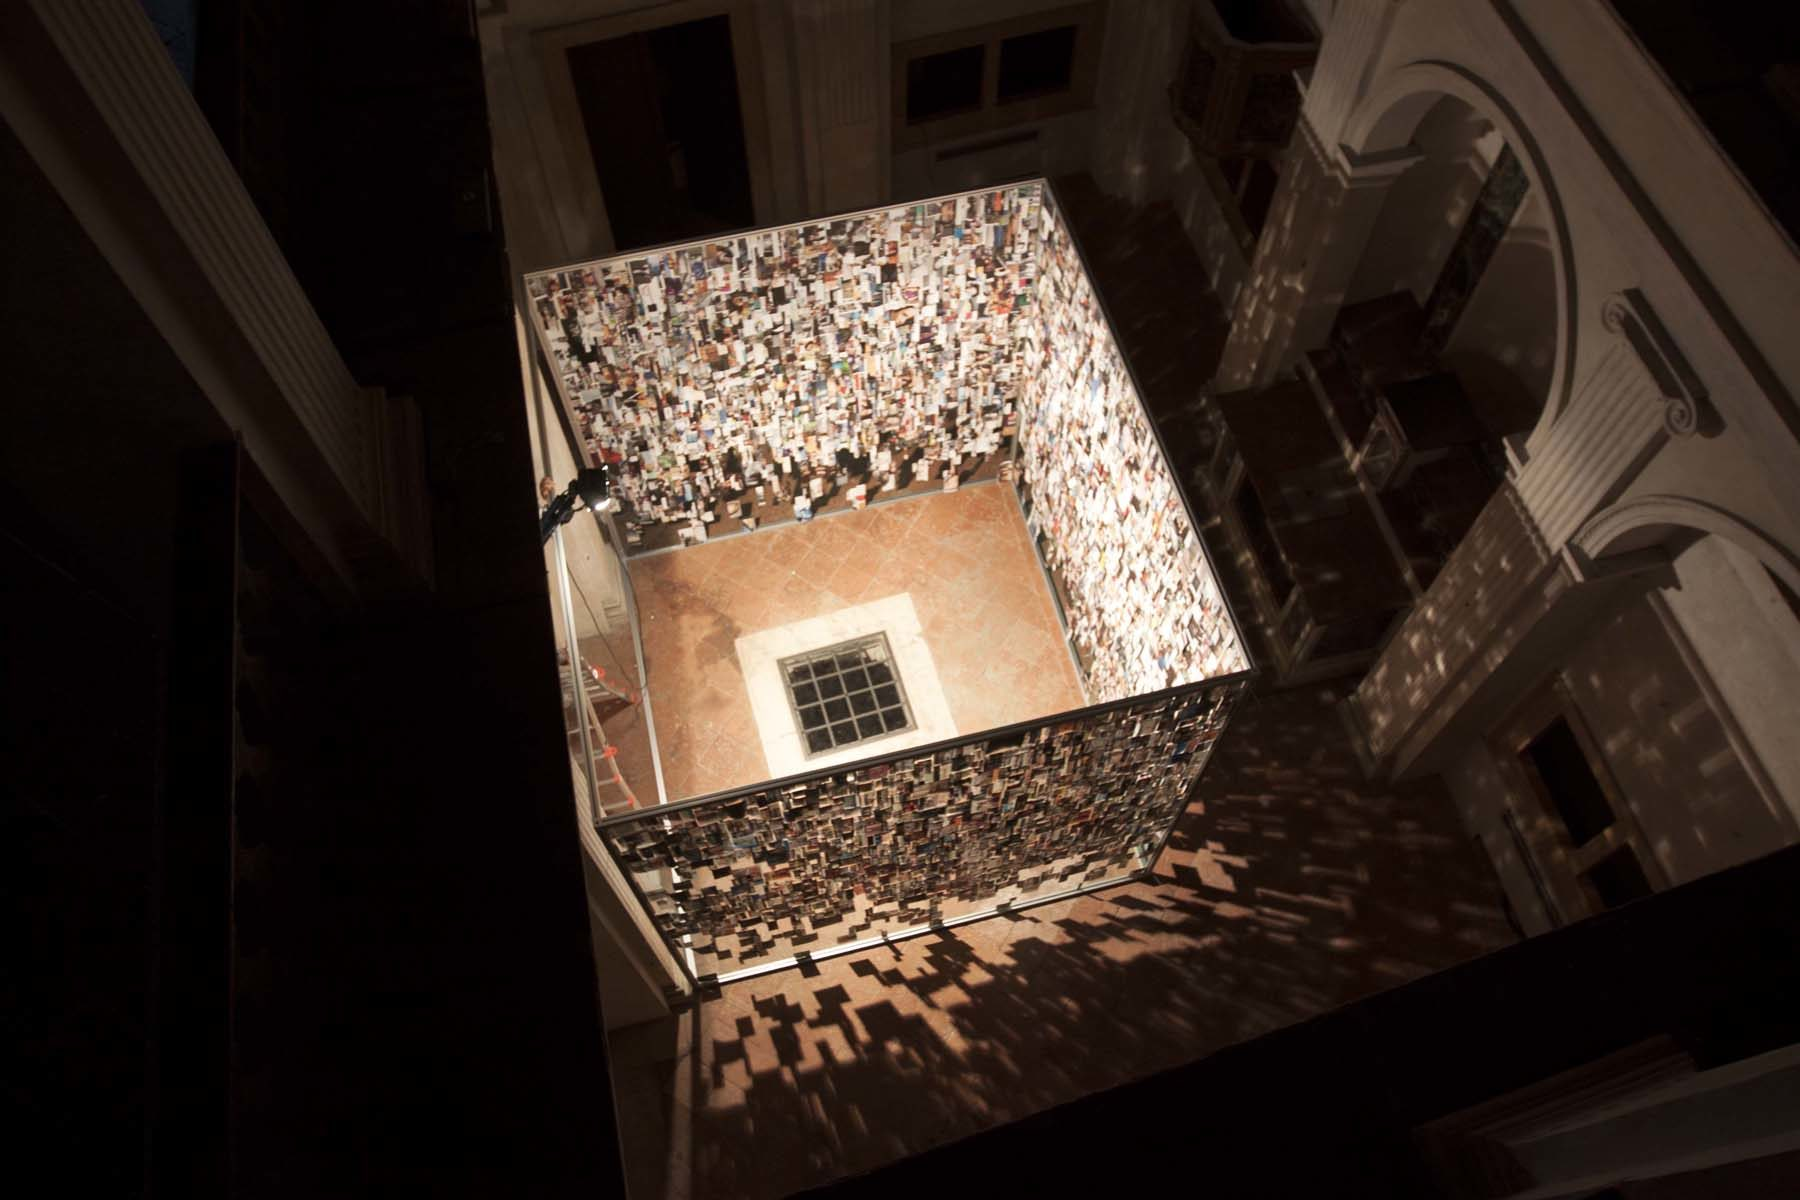 C. Luiselli, Oracle Room, 2015, installation, Oratorio di San Lupo, Bergamo, ph. V.Mussi